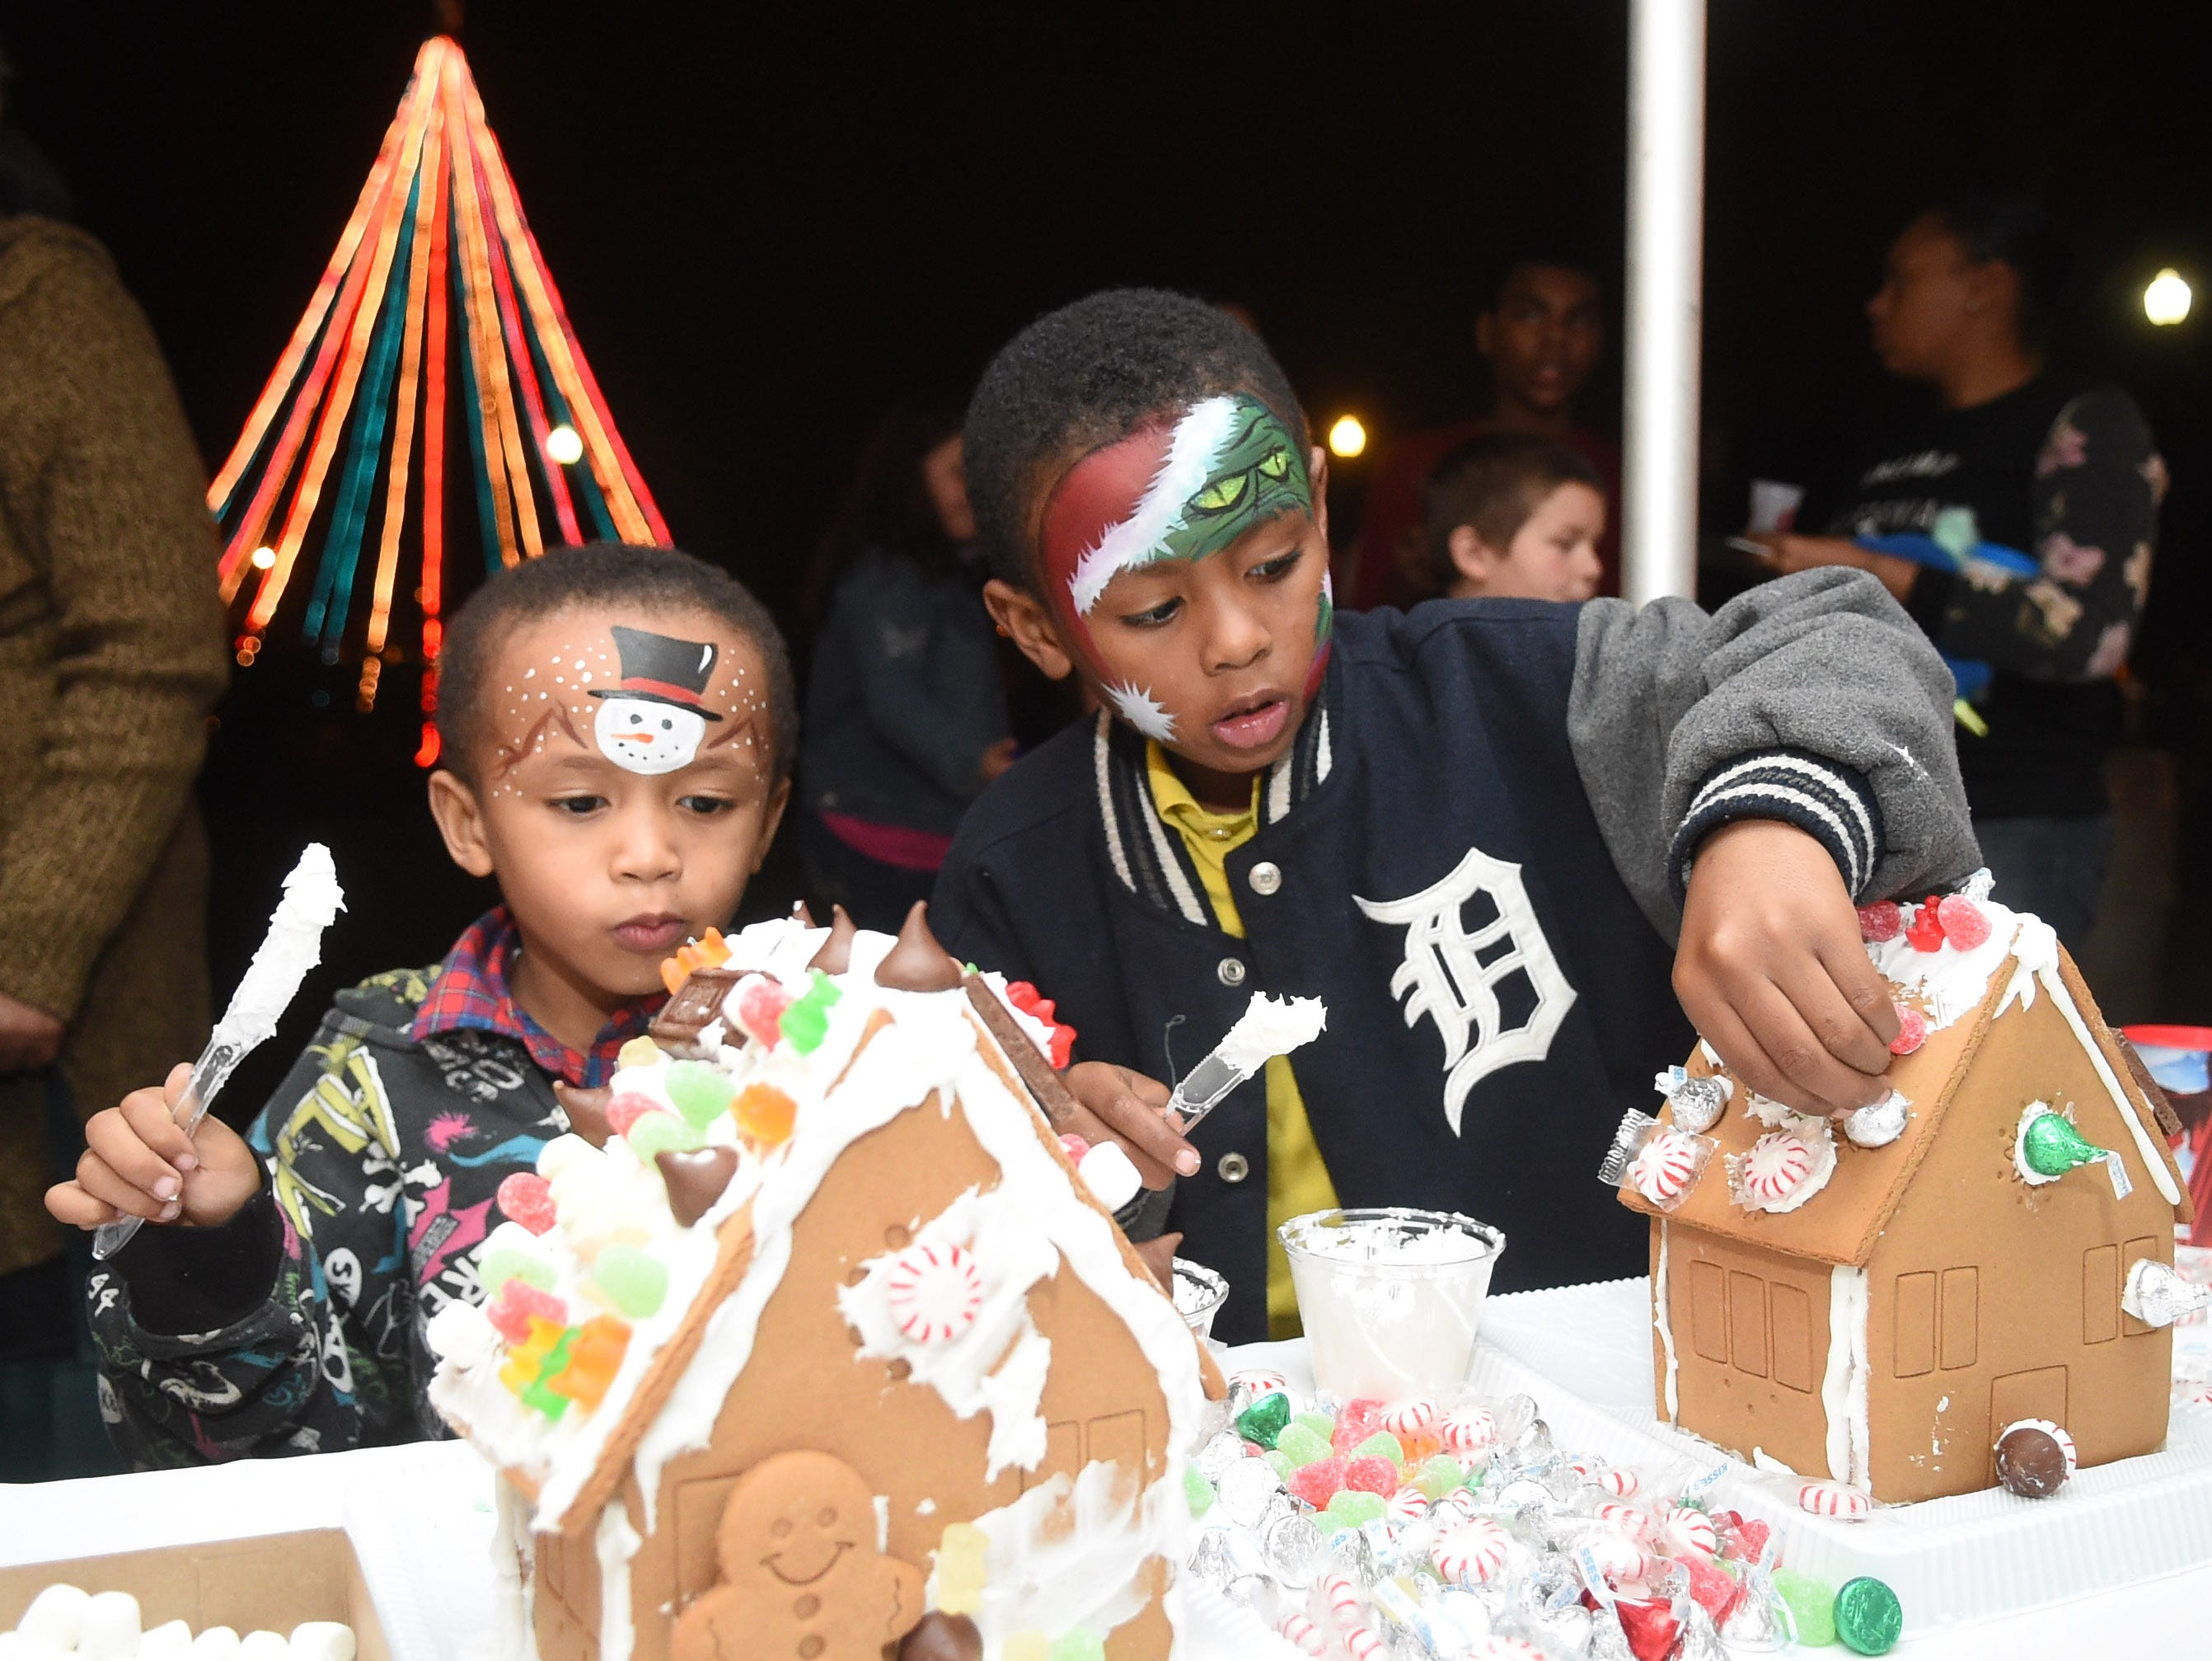 Larryion Boatwright, 4, and Dallas Boatwright, 6, from left, decorate gingerbread houses during Xfinity Christmas at Chilhowee Park on Friday, Dec. 11, 2015. The event offered marshmallow roasting, train rides, and photos with Santa Claus.